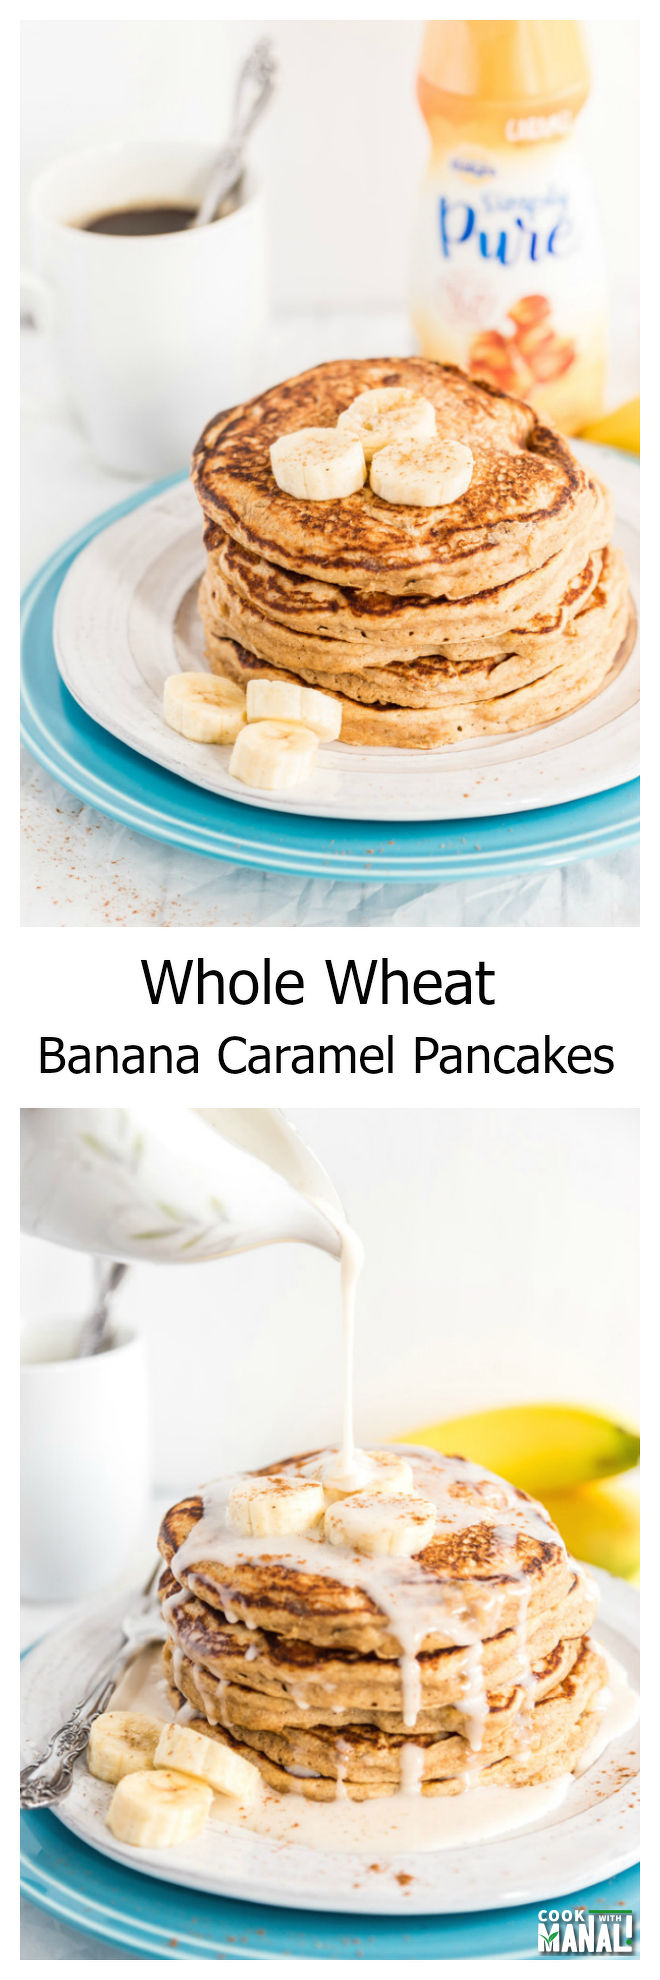 Whole Wheat Banana Caramel Pancakes Collage